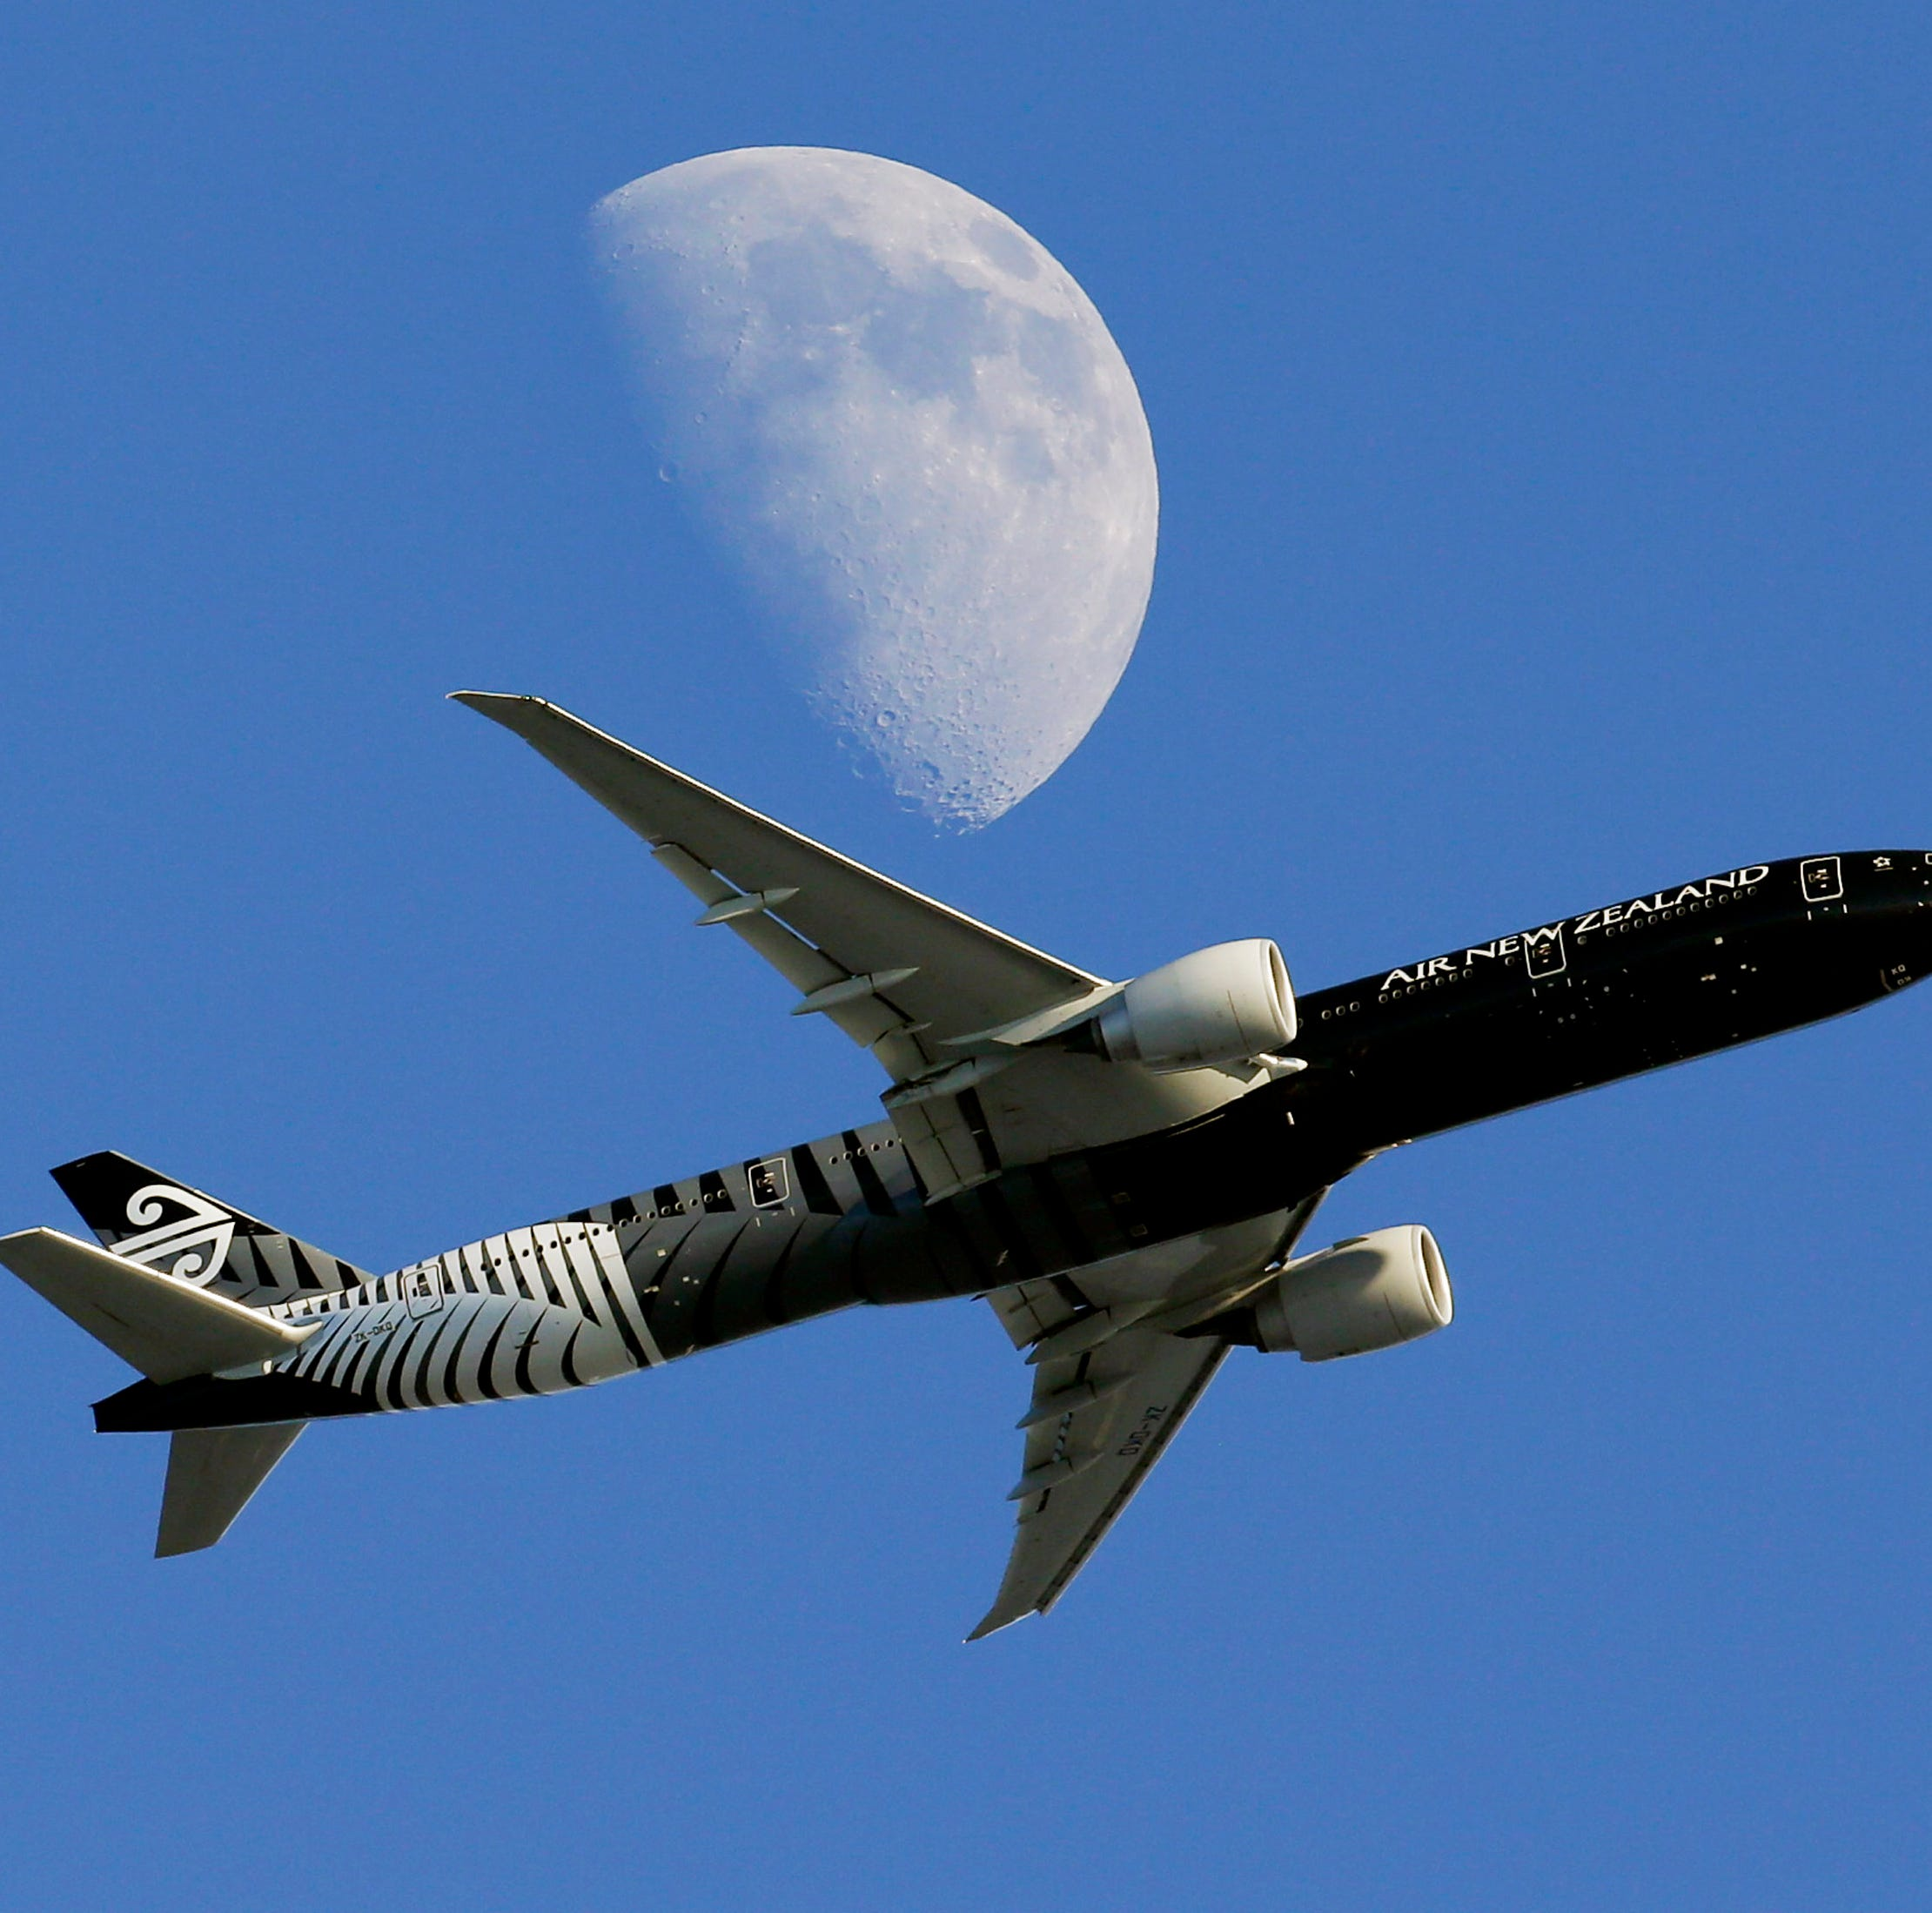 FILE - In this Aug. 23, 2015, file photo, an Air New Zealand passenger plane flies past the moon on its way to the Los Angeles International Airport from London, in Whittier, Calif. When a drone flew within meters of a landing passenger plane on March 25, 2018, Air New Zealand said reckless drone operators should be thrown in prison. Other agencies chimed in, calling such actions inexcusable and stupid. Yet The Associated Press has found that not one of them called police. Not while it was endangering the plane, nor later to try to track down the perpetrator. (AP Photo/Nick Ut, File) ORG XMIT: TKTT101